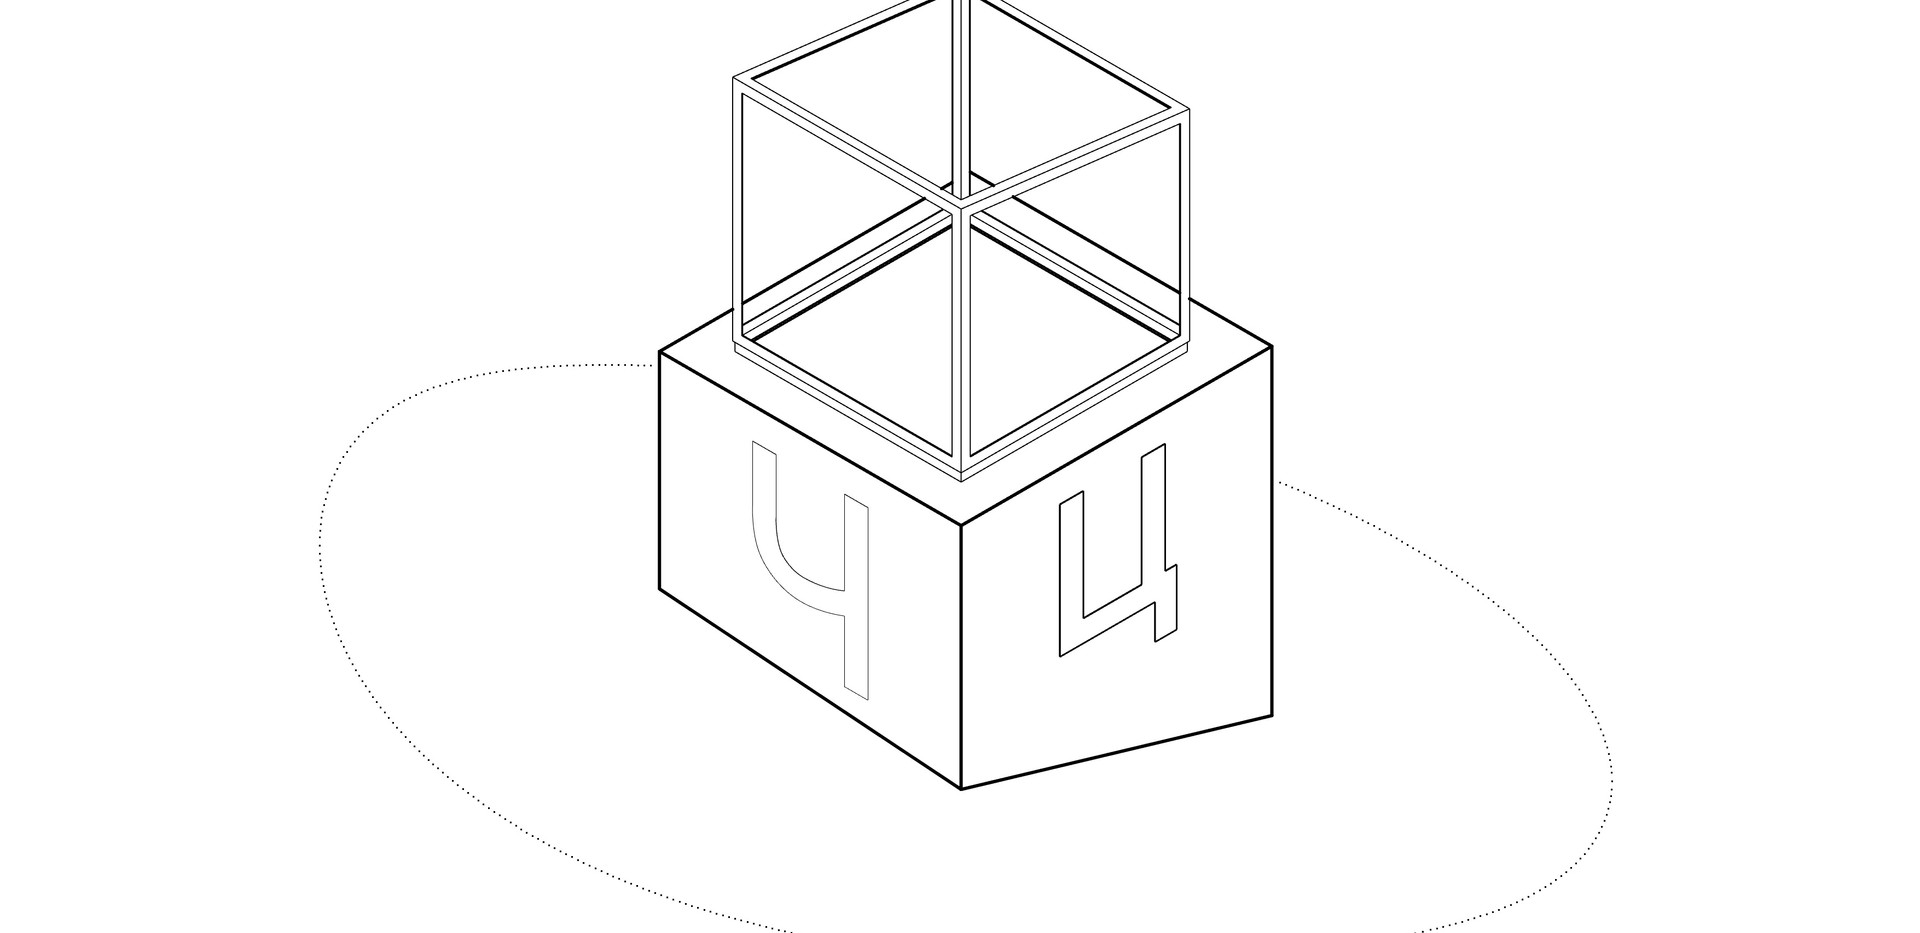 Vitrine_Axonometric-view.jpg